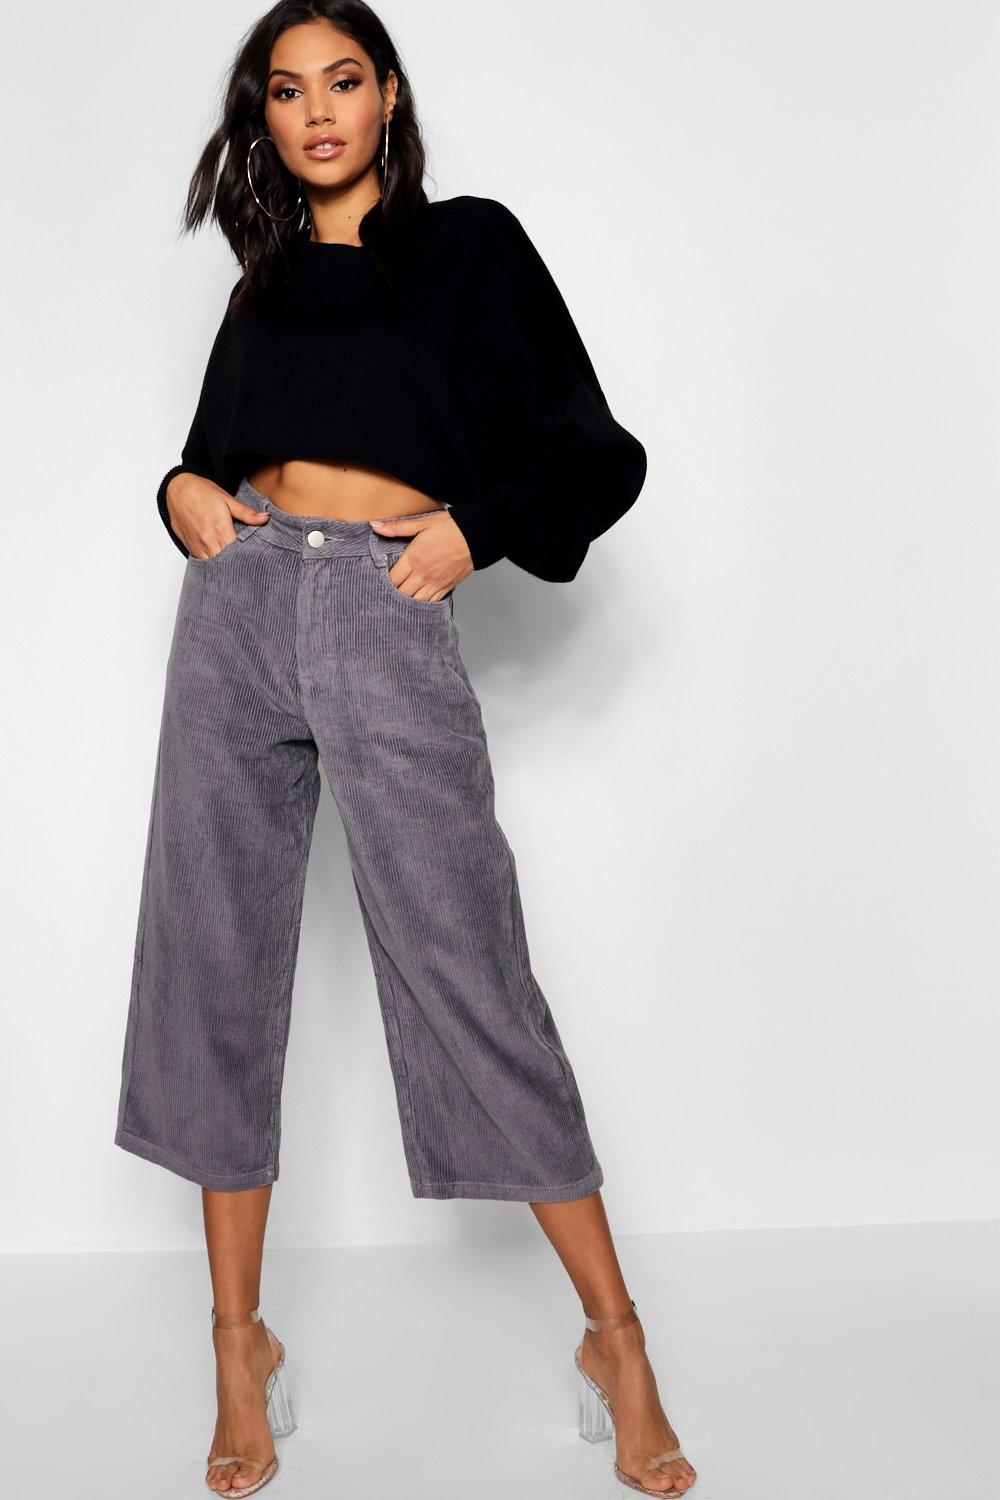 705957fe07601 High Waist Wide Leg Cropped Jumbo Cords. Hover to zoom